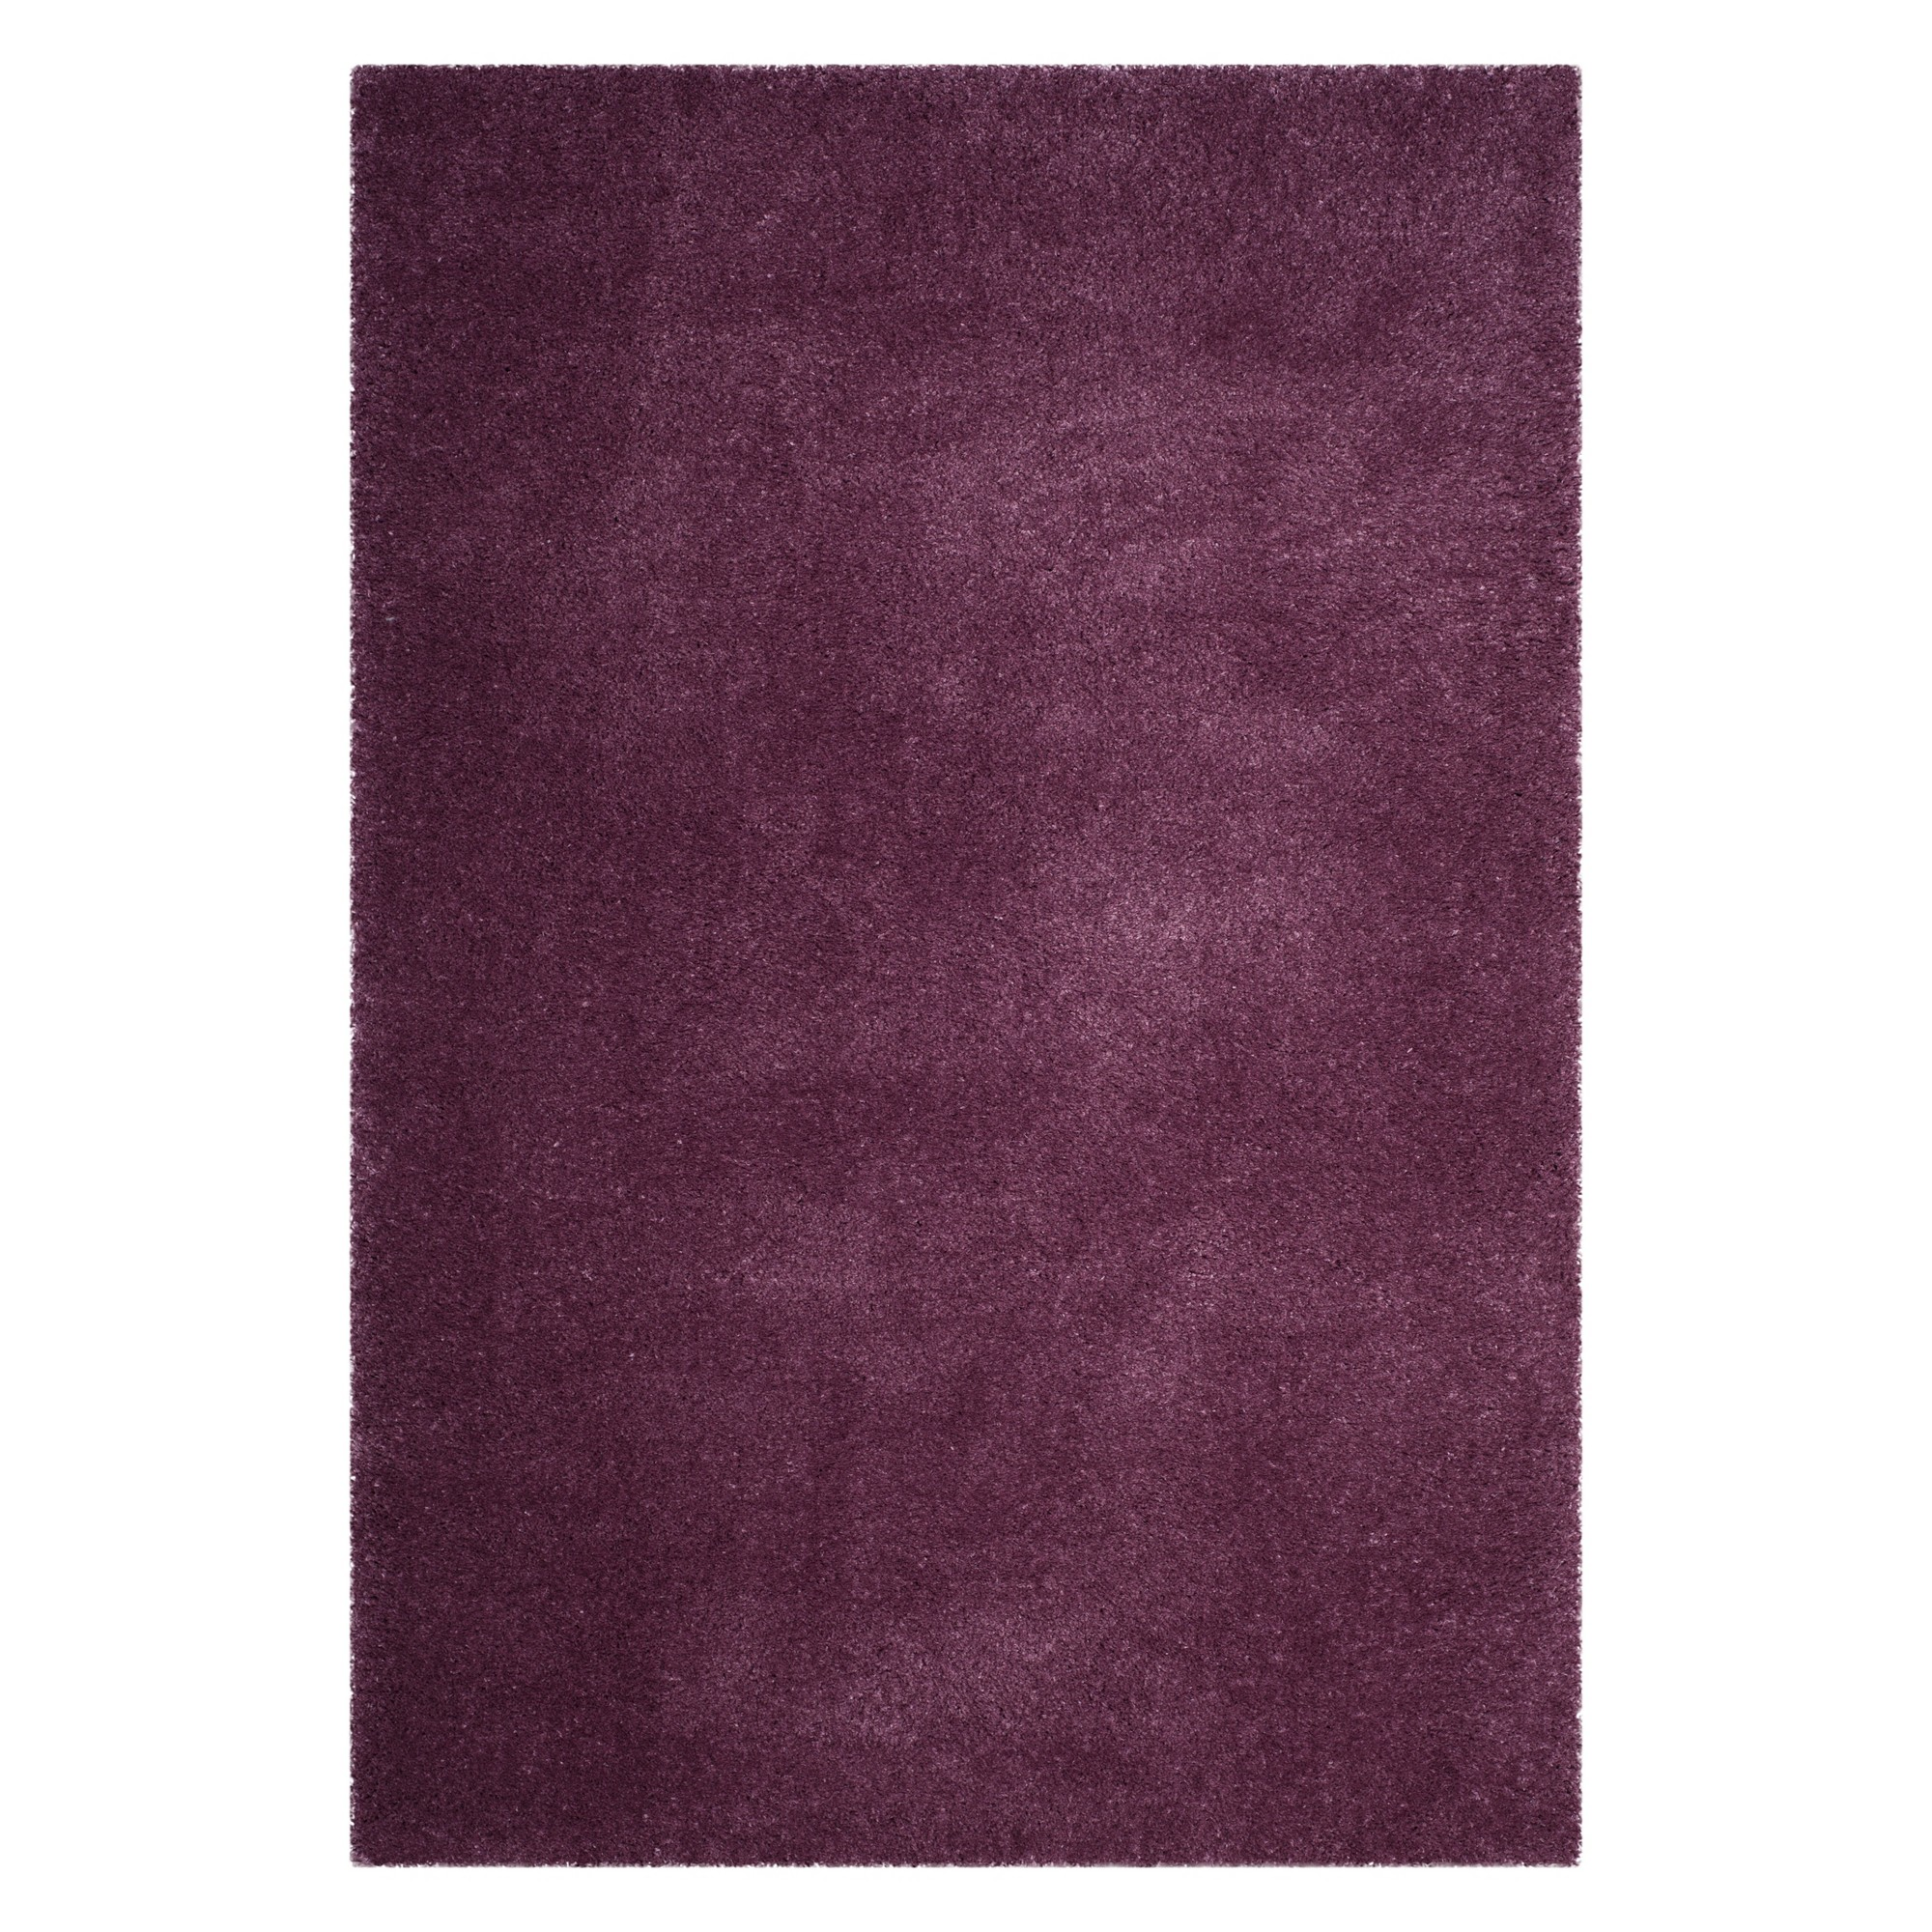 3'X5' Solid Loomed Accent Rug Purple - Safavieh